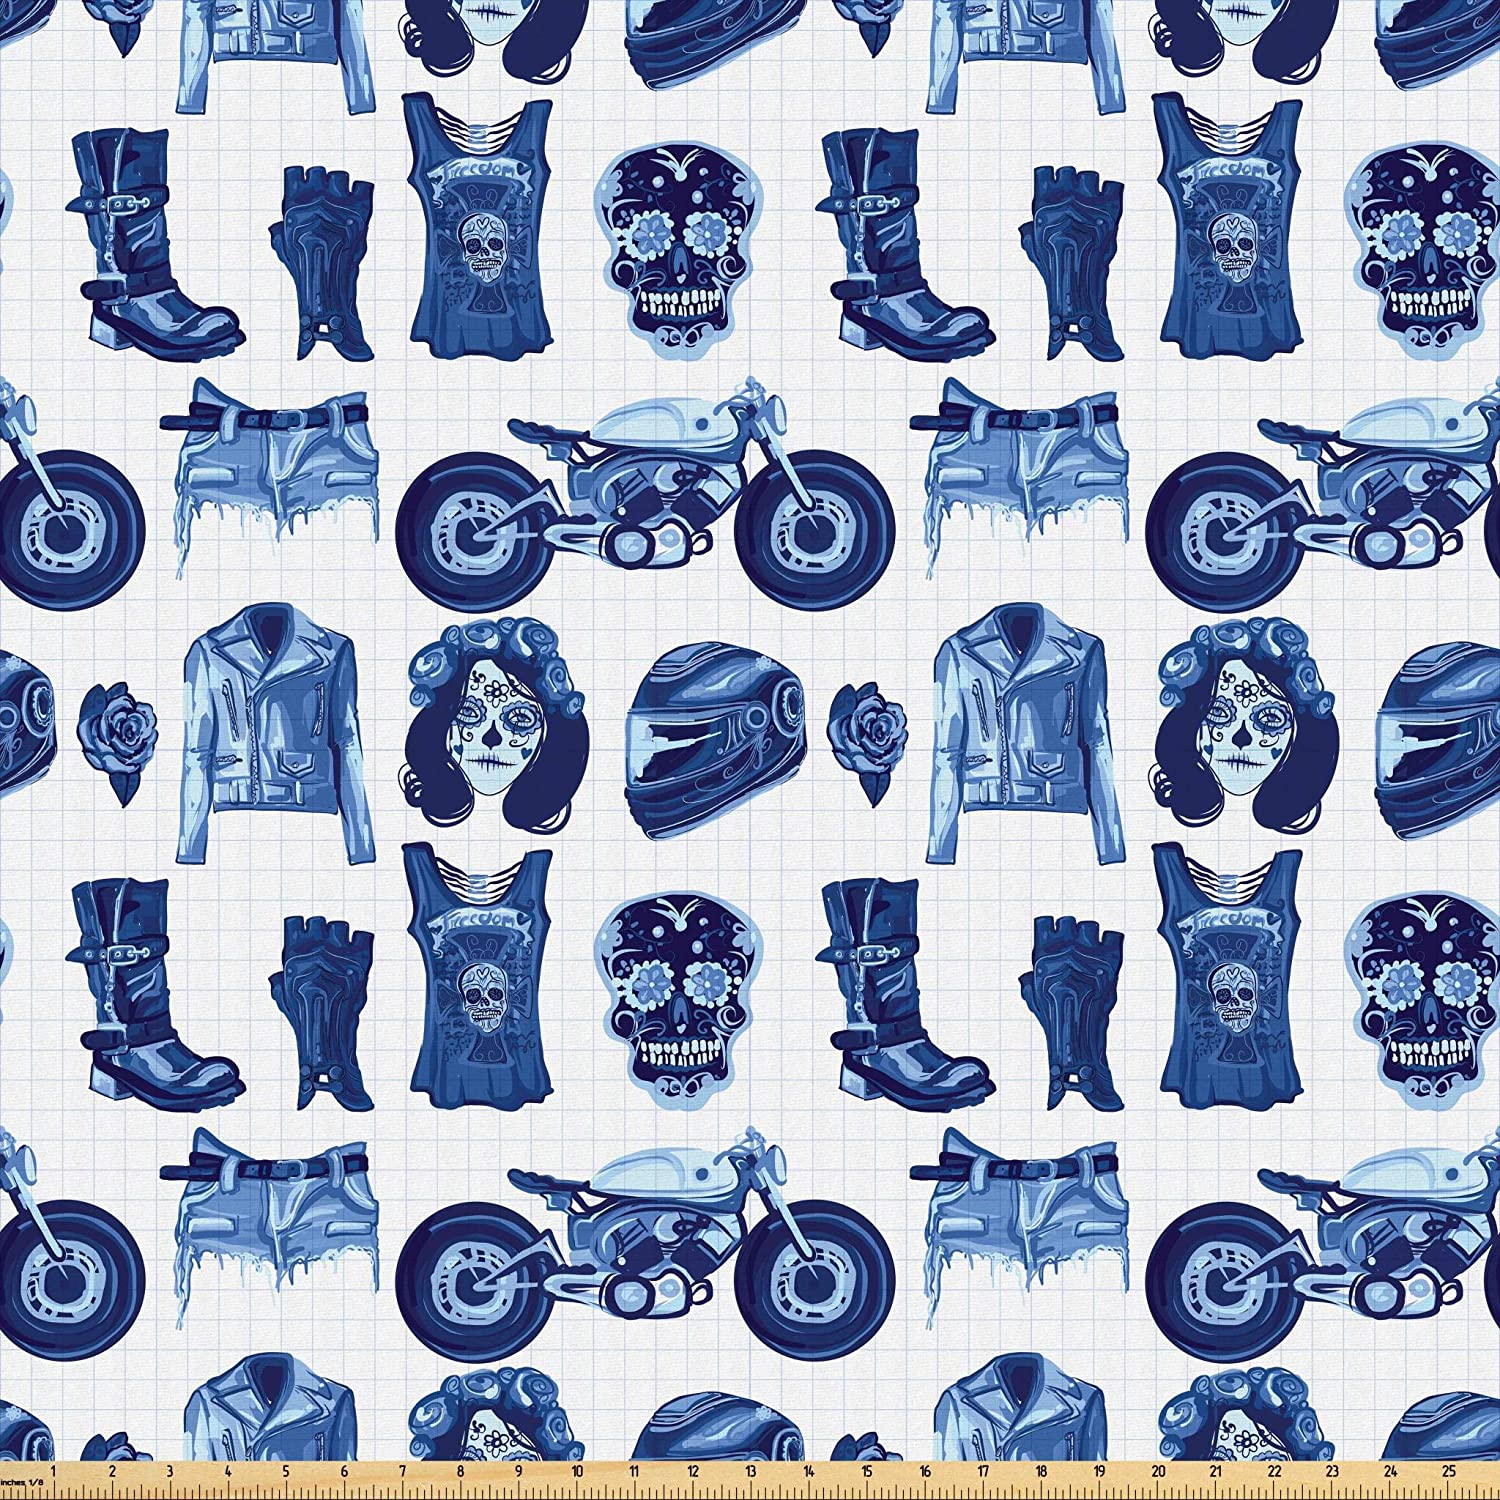 Lunarable Fashion Fabric by The Yard, Gothic Motorcycle Rider Clothes and Sugar Skull Darkness Watercolor Art Print, Microfiber Fabric for Arts and Crafts Textiles & Decor, 1 Yard, Navy Blue